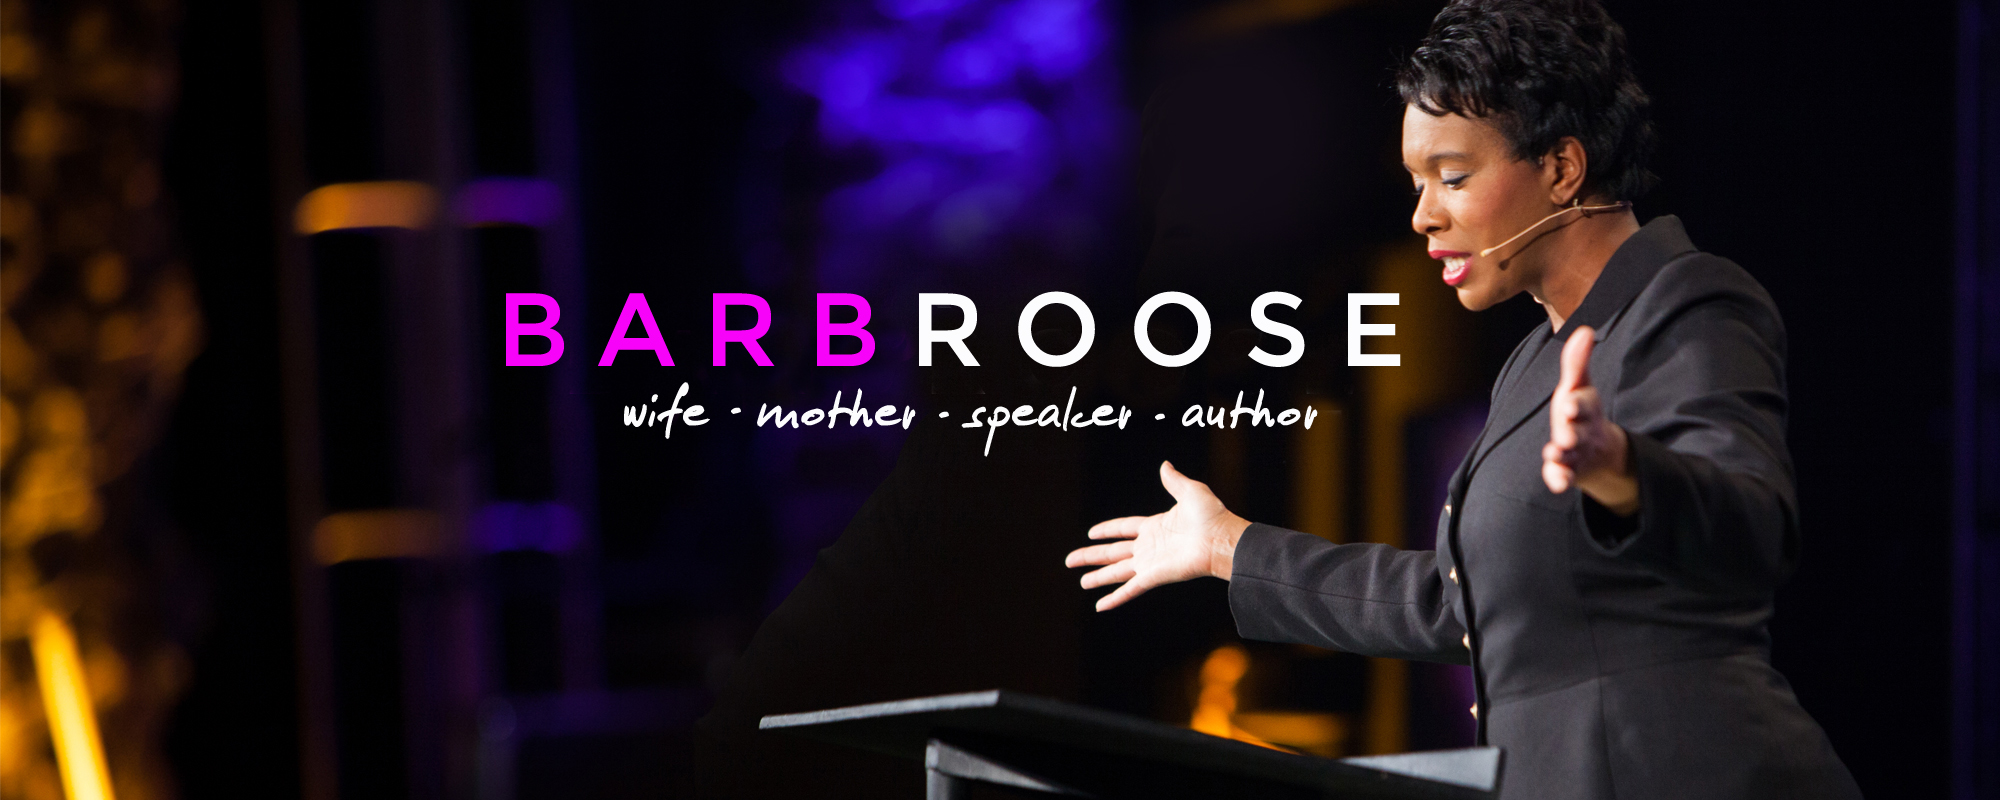 Barb Roose Speaker Author Wife Mother